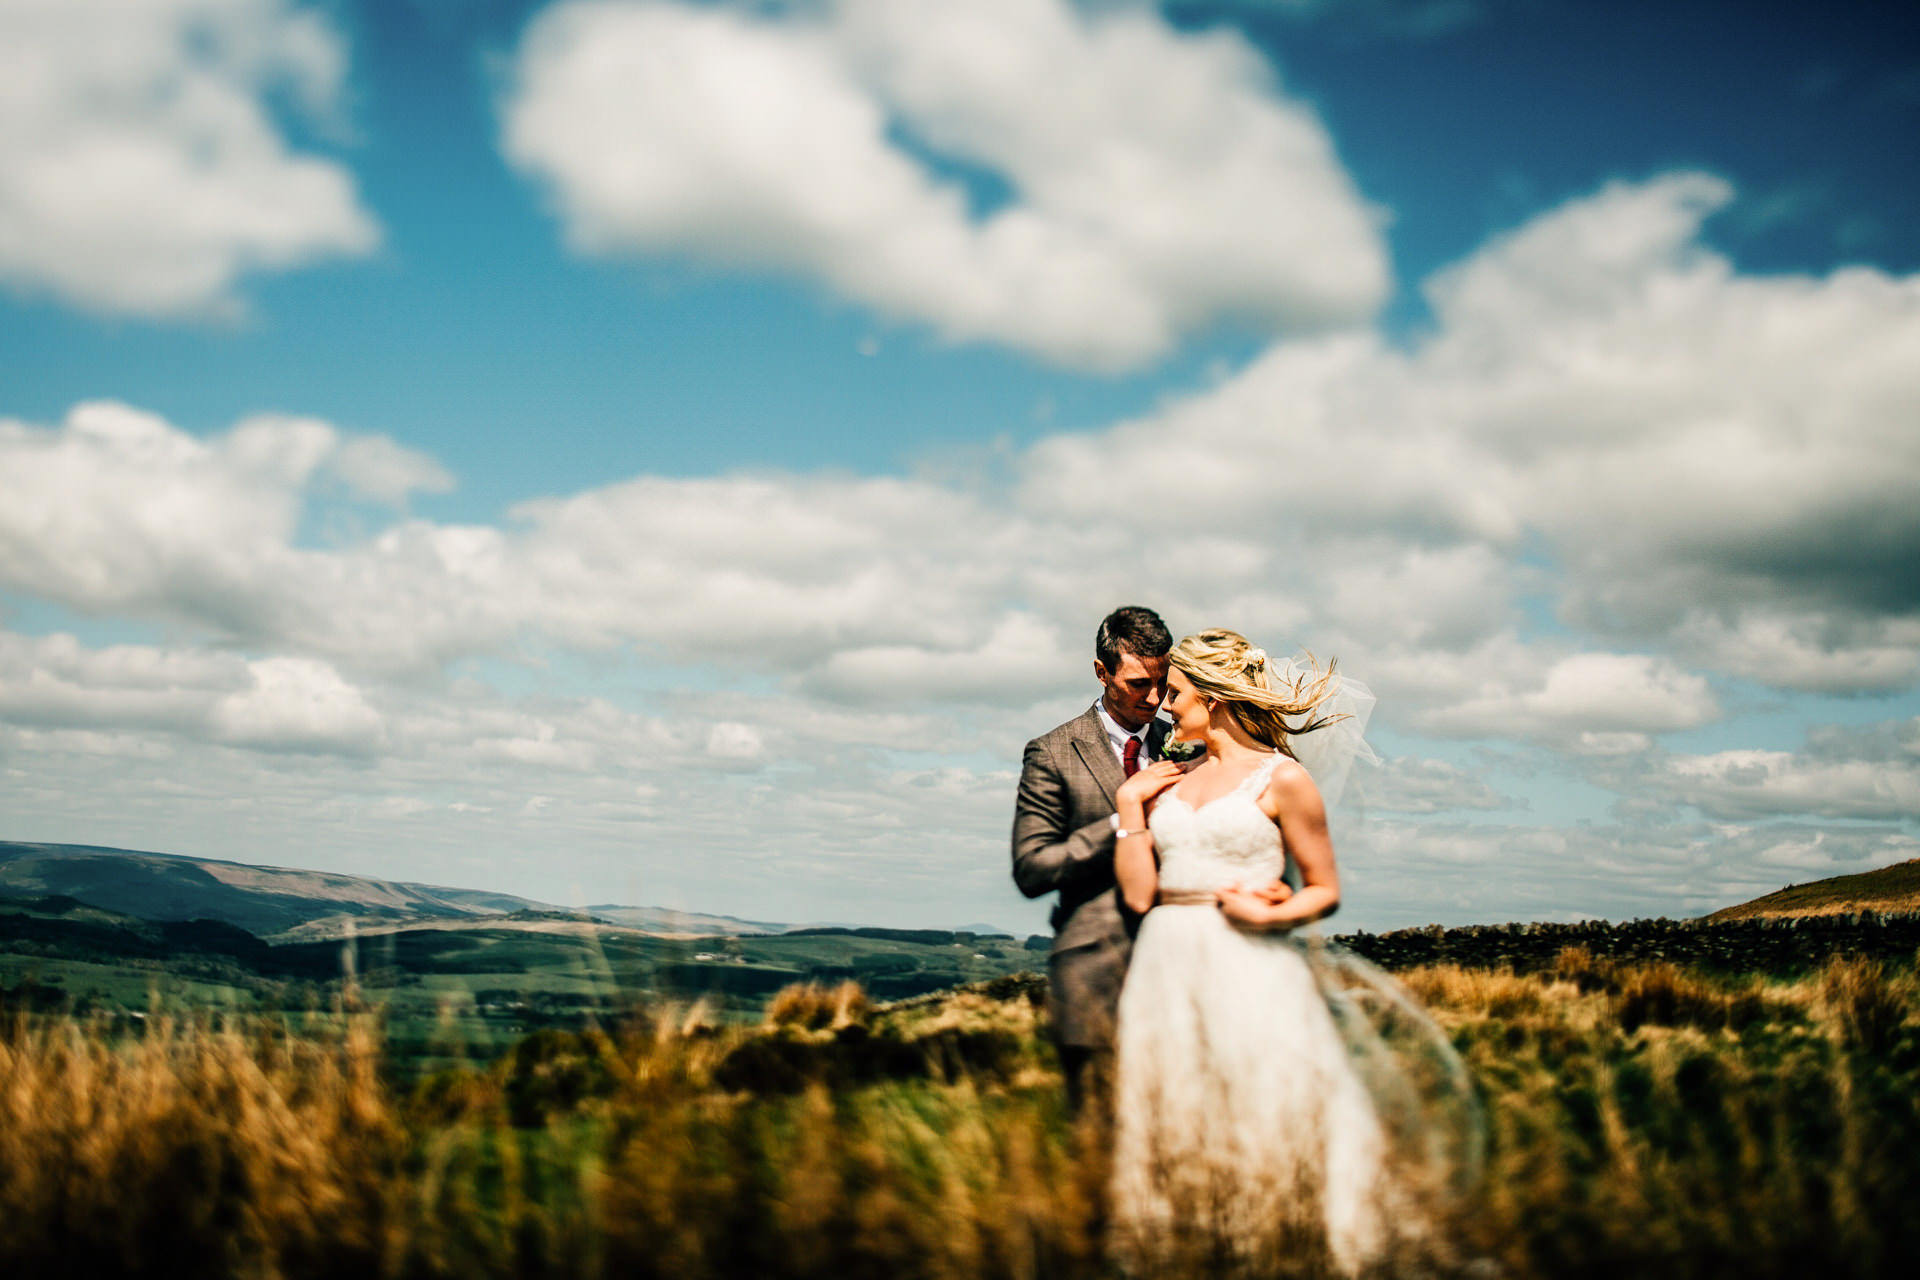 Best wedding photography 2016 - bride and groom portrait in the lancashire hills